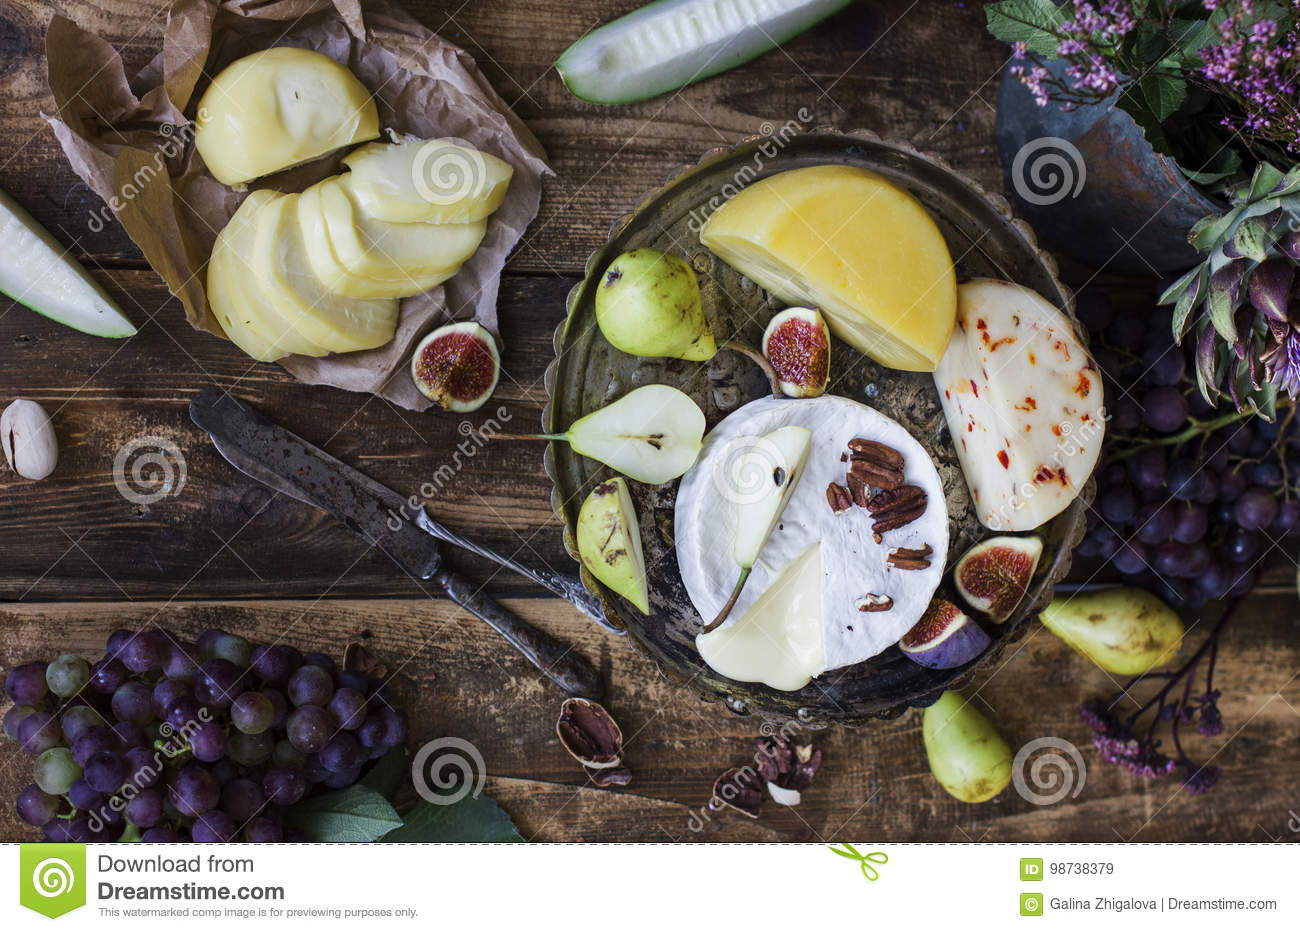 Different cheese, fresh fruits and garden flowers on old wooden background